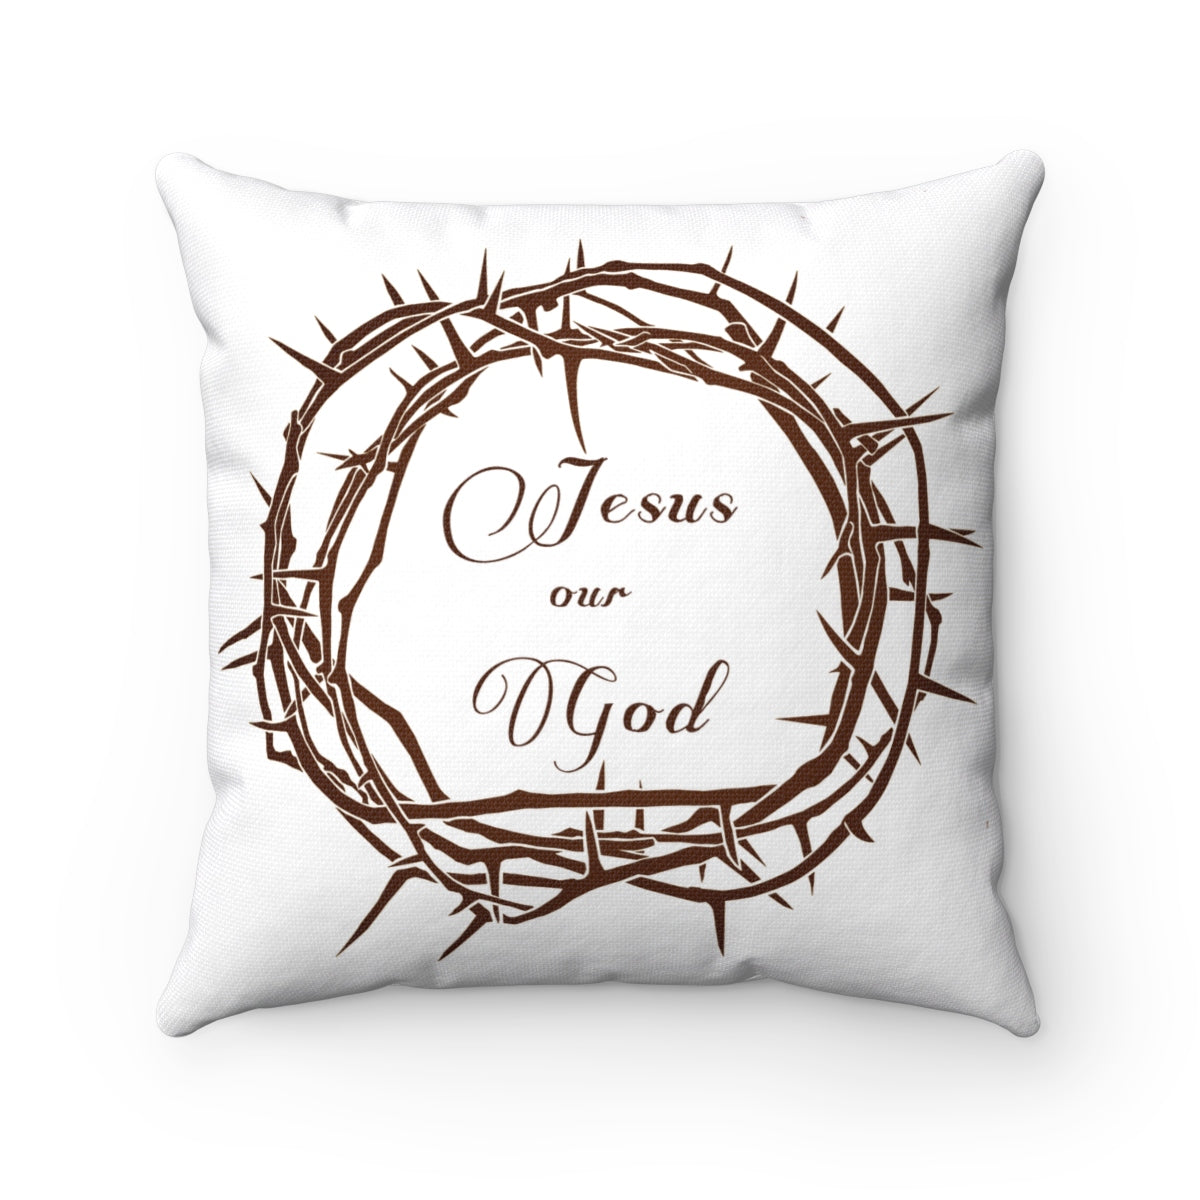 Jesus Our God Spun Polyester Square Pillow